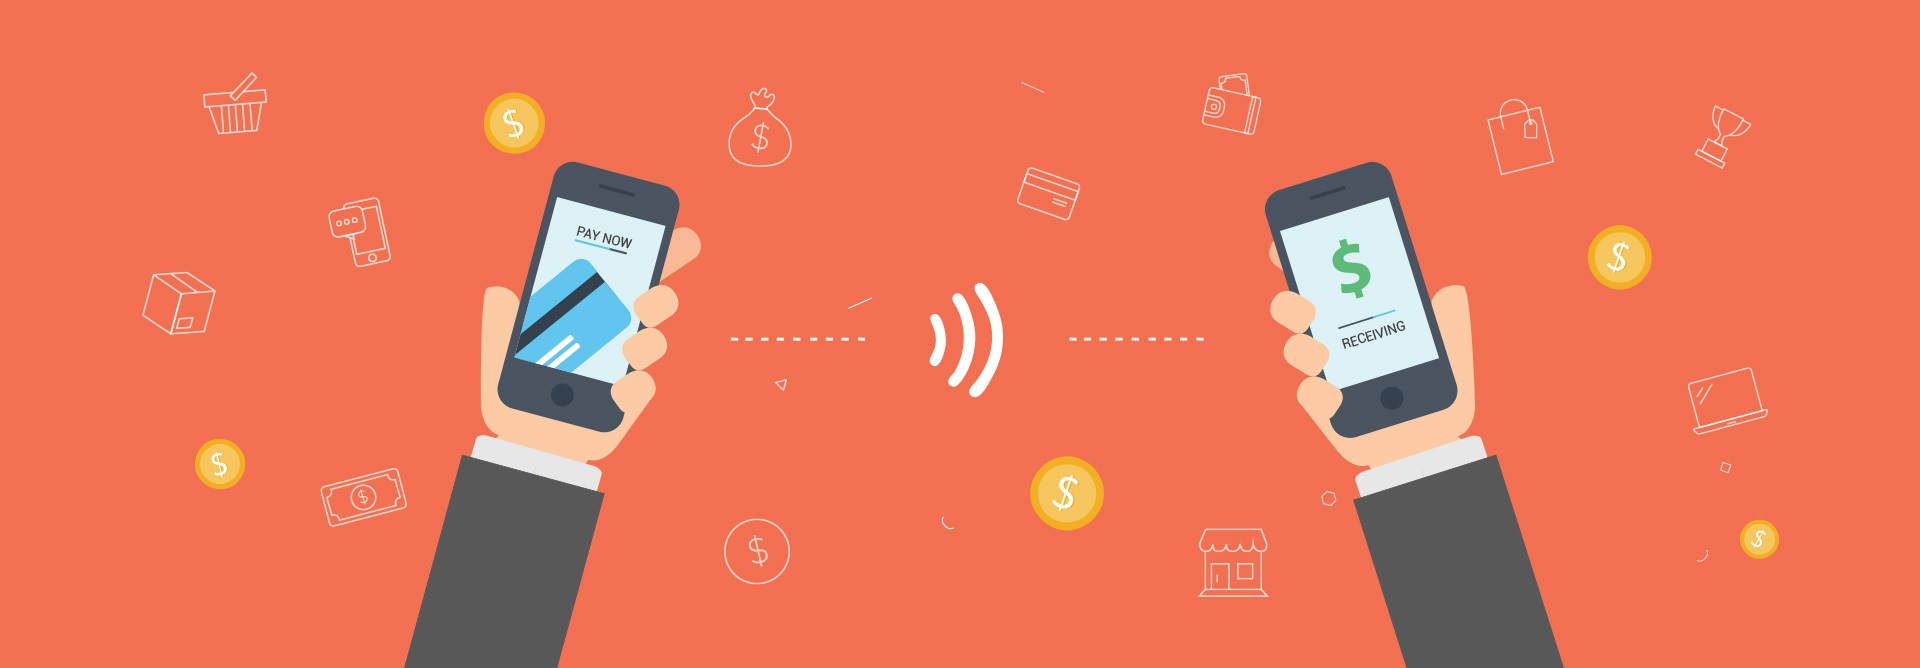 Why mobile payment is important today?